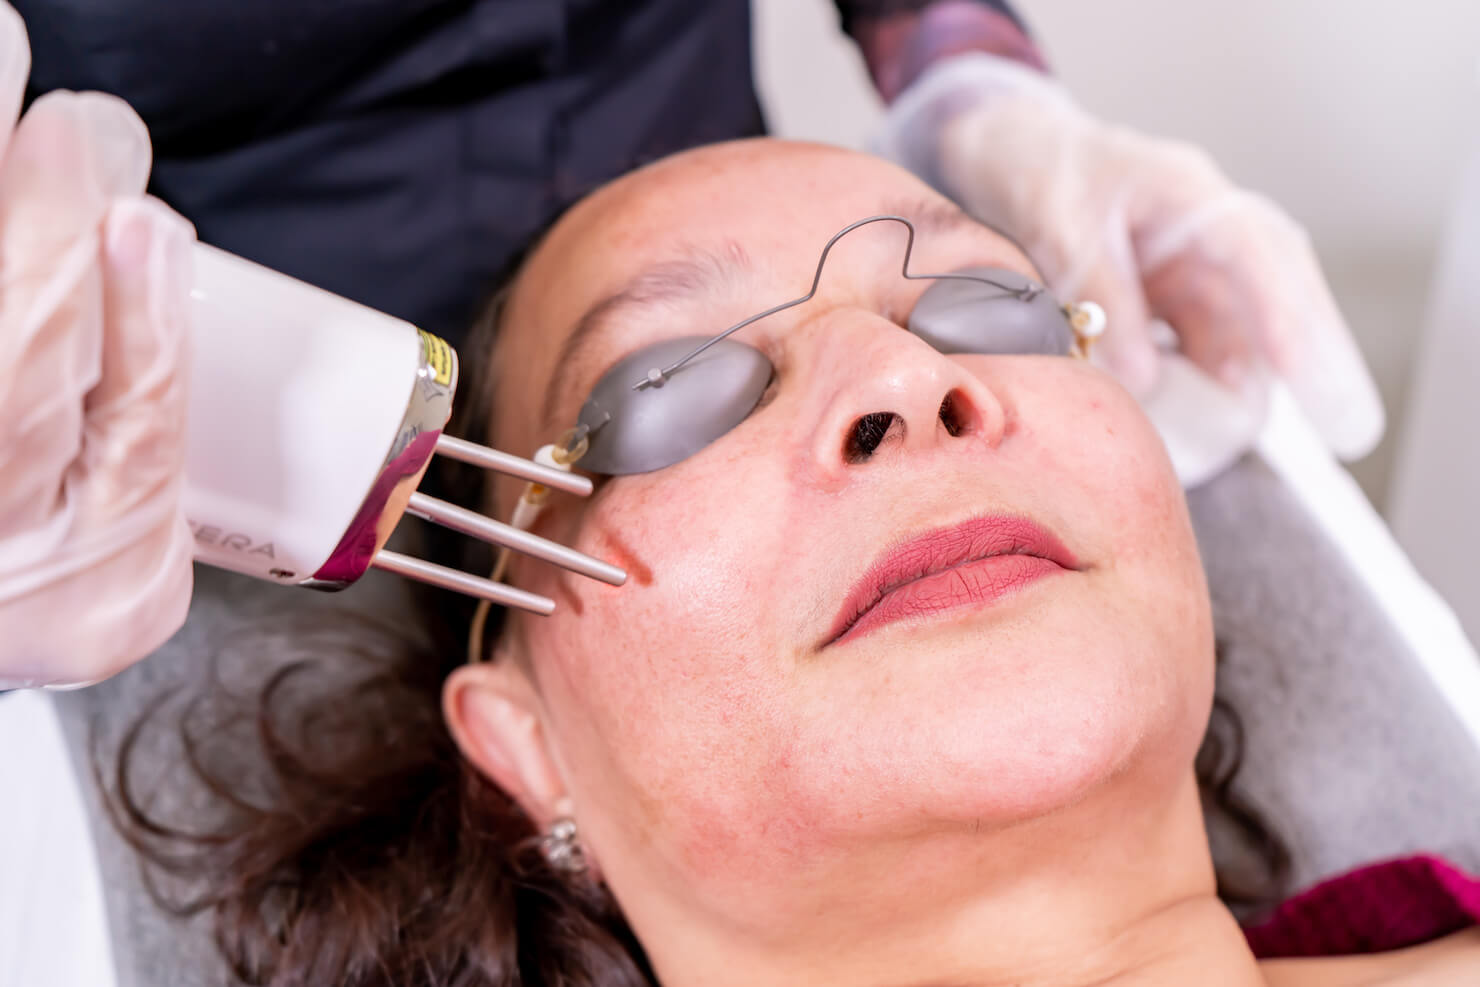 enlighten picosecond laser being used on face for surrey pigmentation treatment